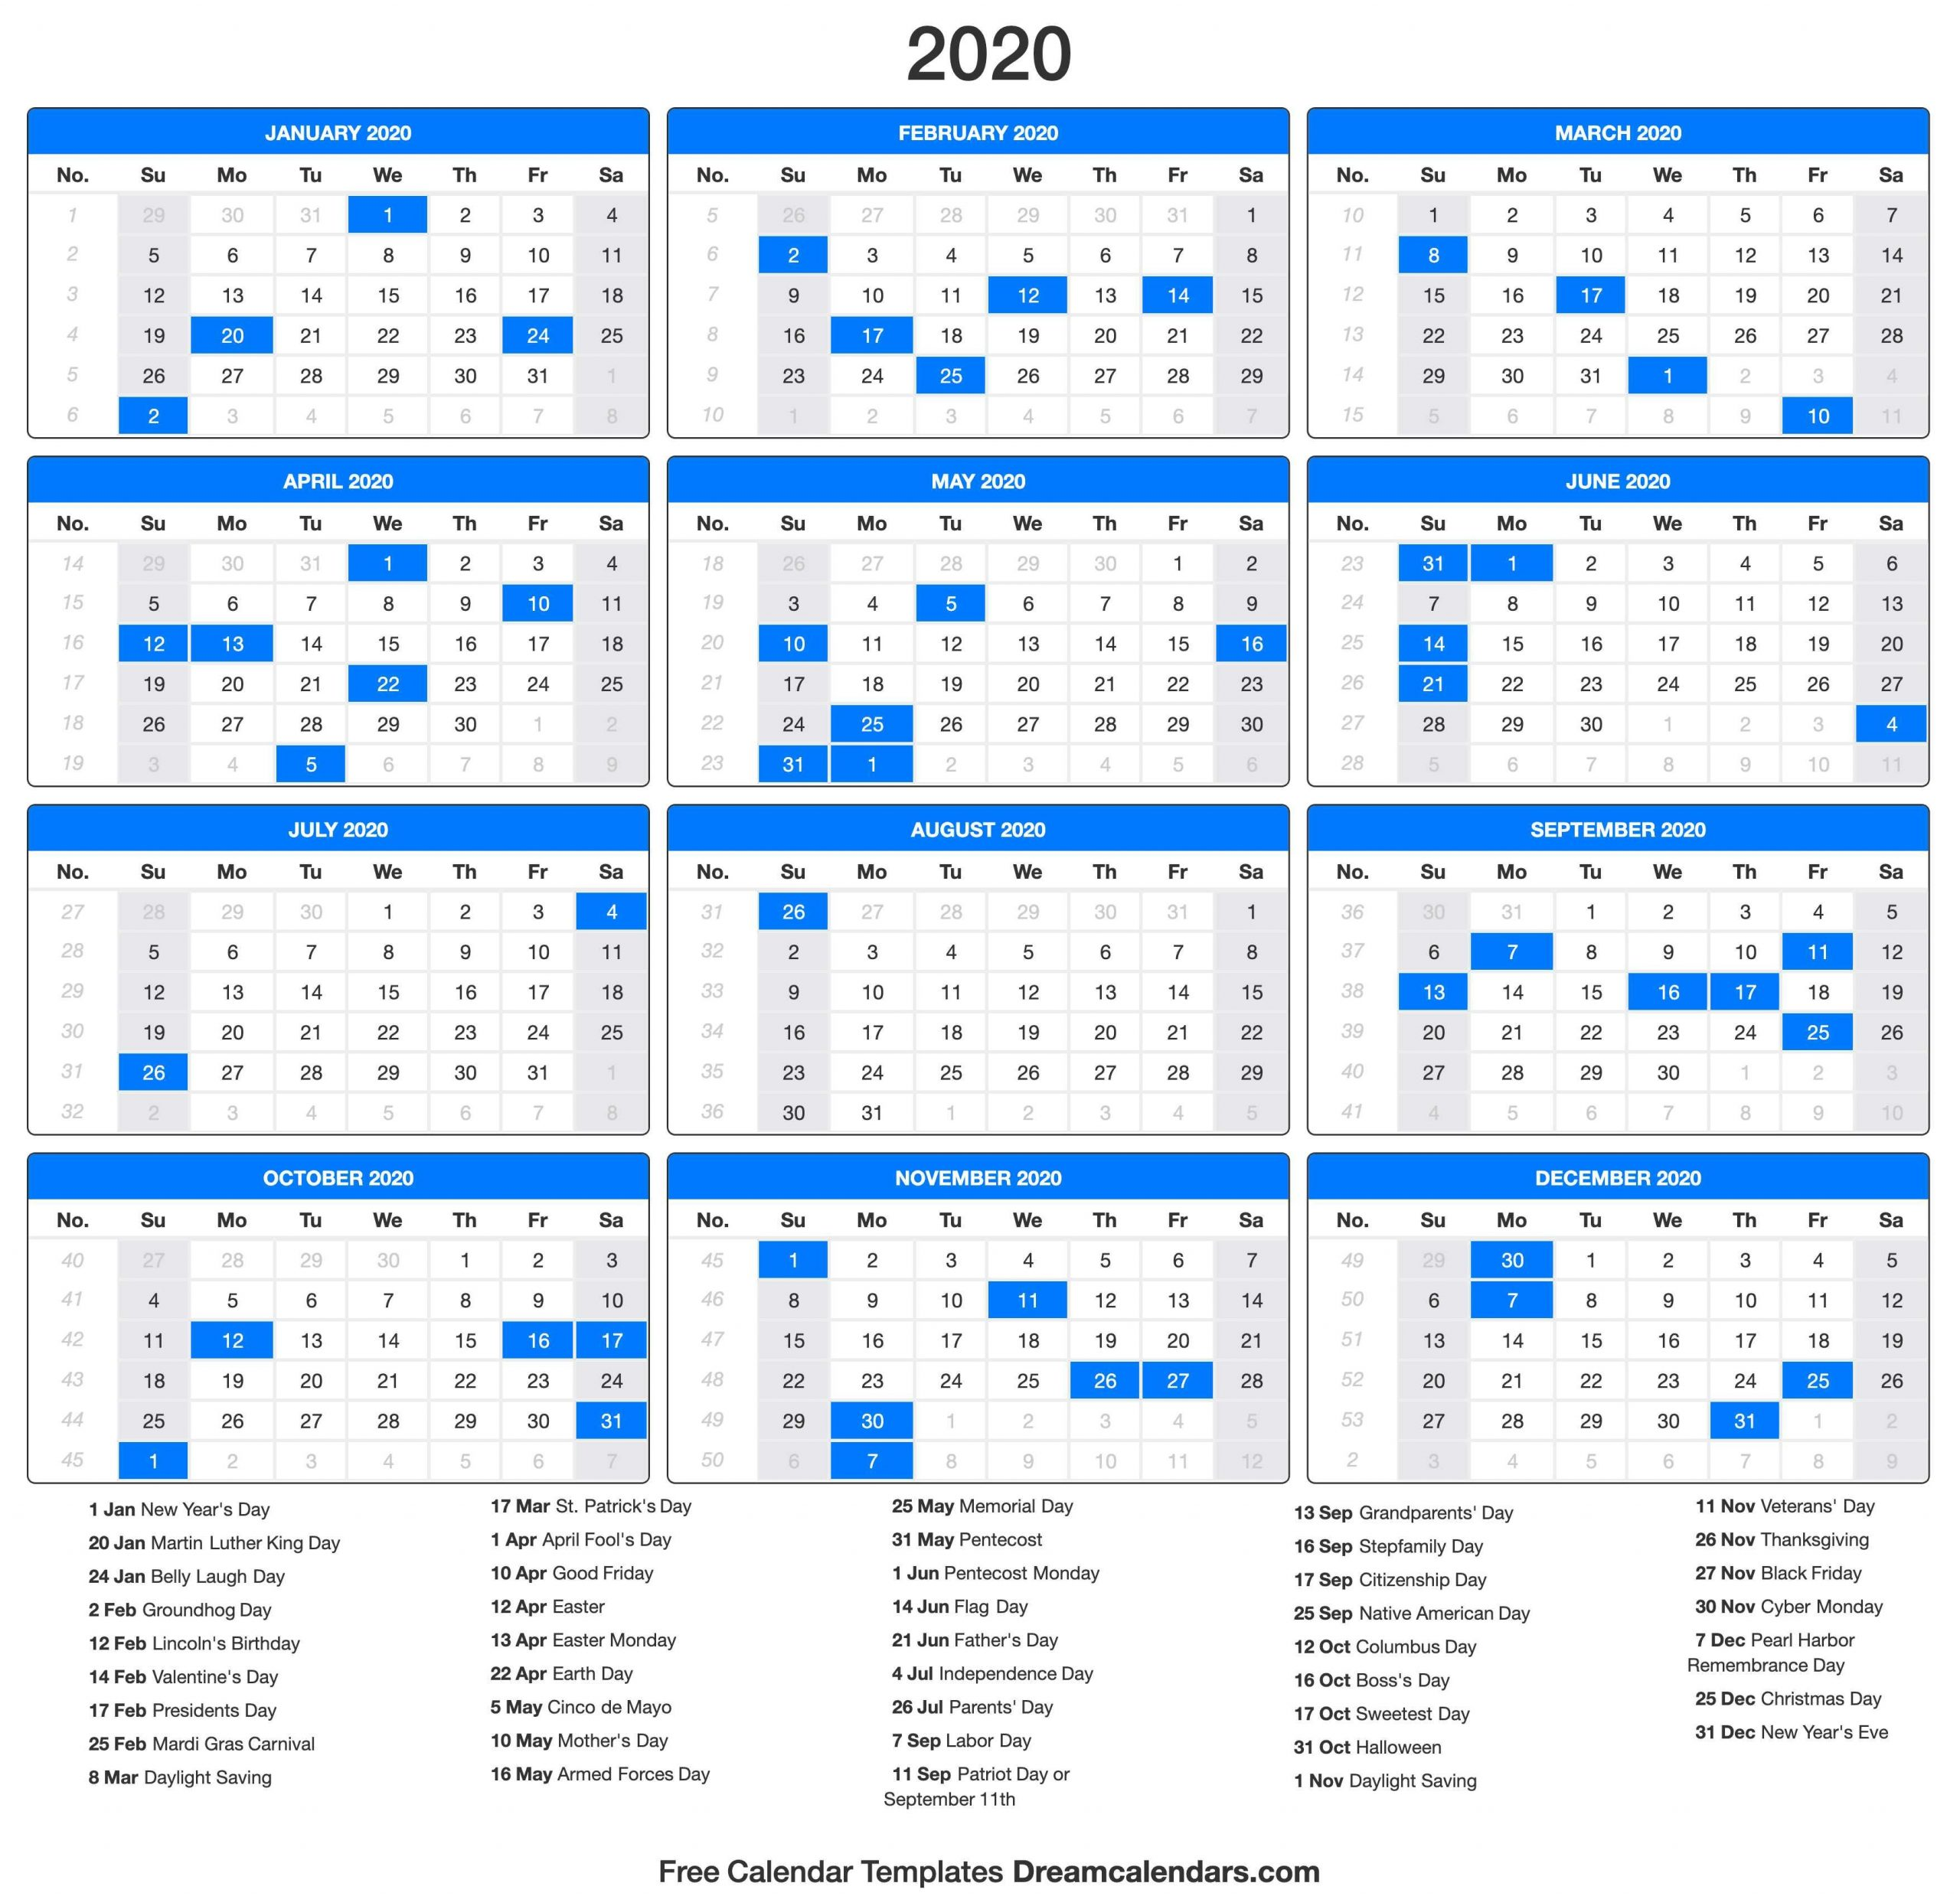 2020 Calendar Calendar With 365 Days Numbered